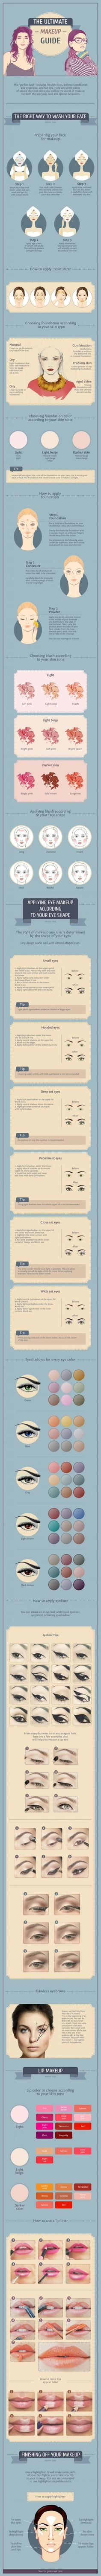 Step-by-step instructions to help you attain an absolutely flawless look.